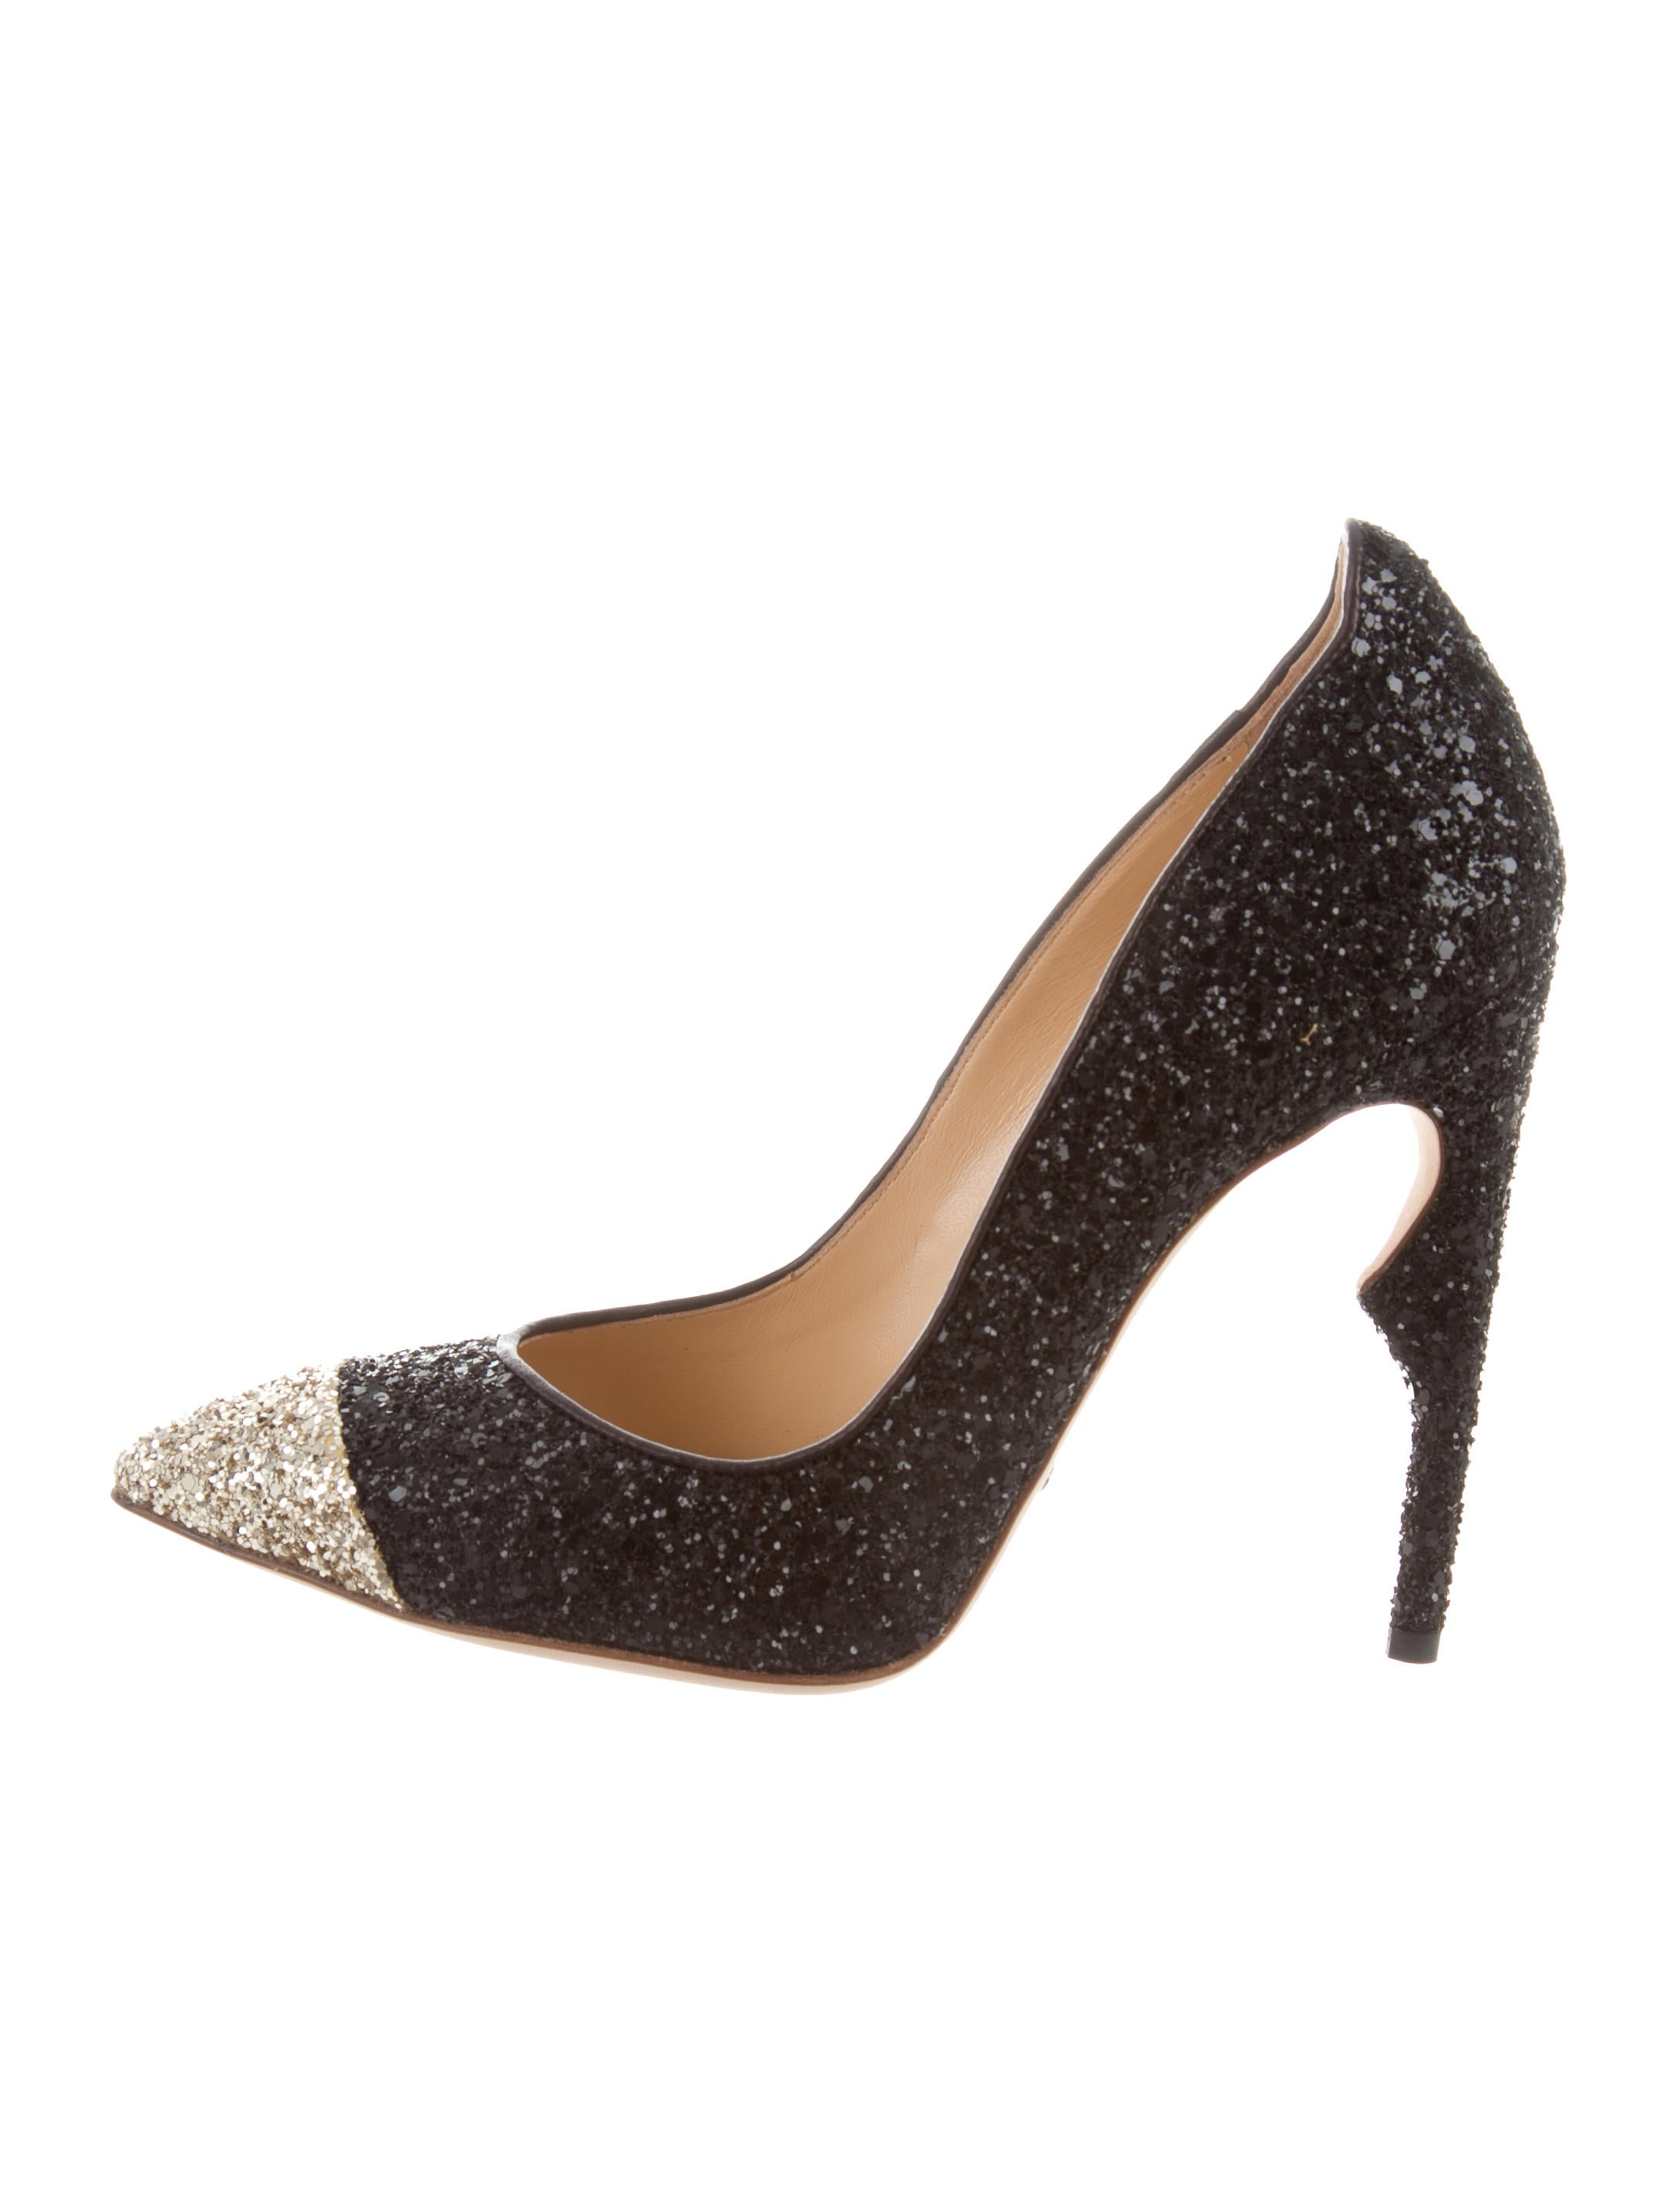 free shipping online cheap price outlet sale Jerome C. Rousseau Flicker Glitter Pumps w/ Tags cheap choice clearance store cheap price best prices cheap price jNNj0cUX8P